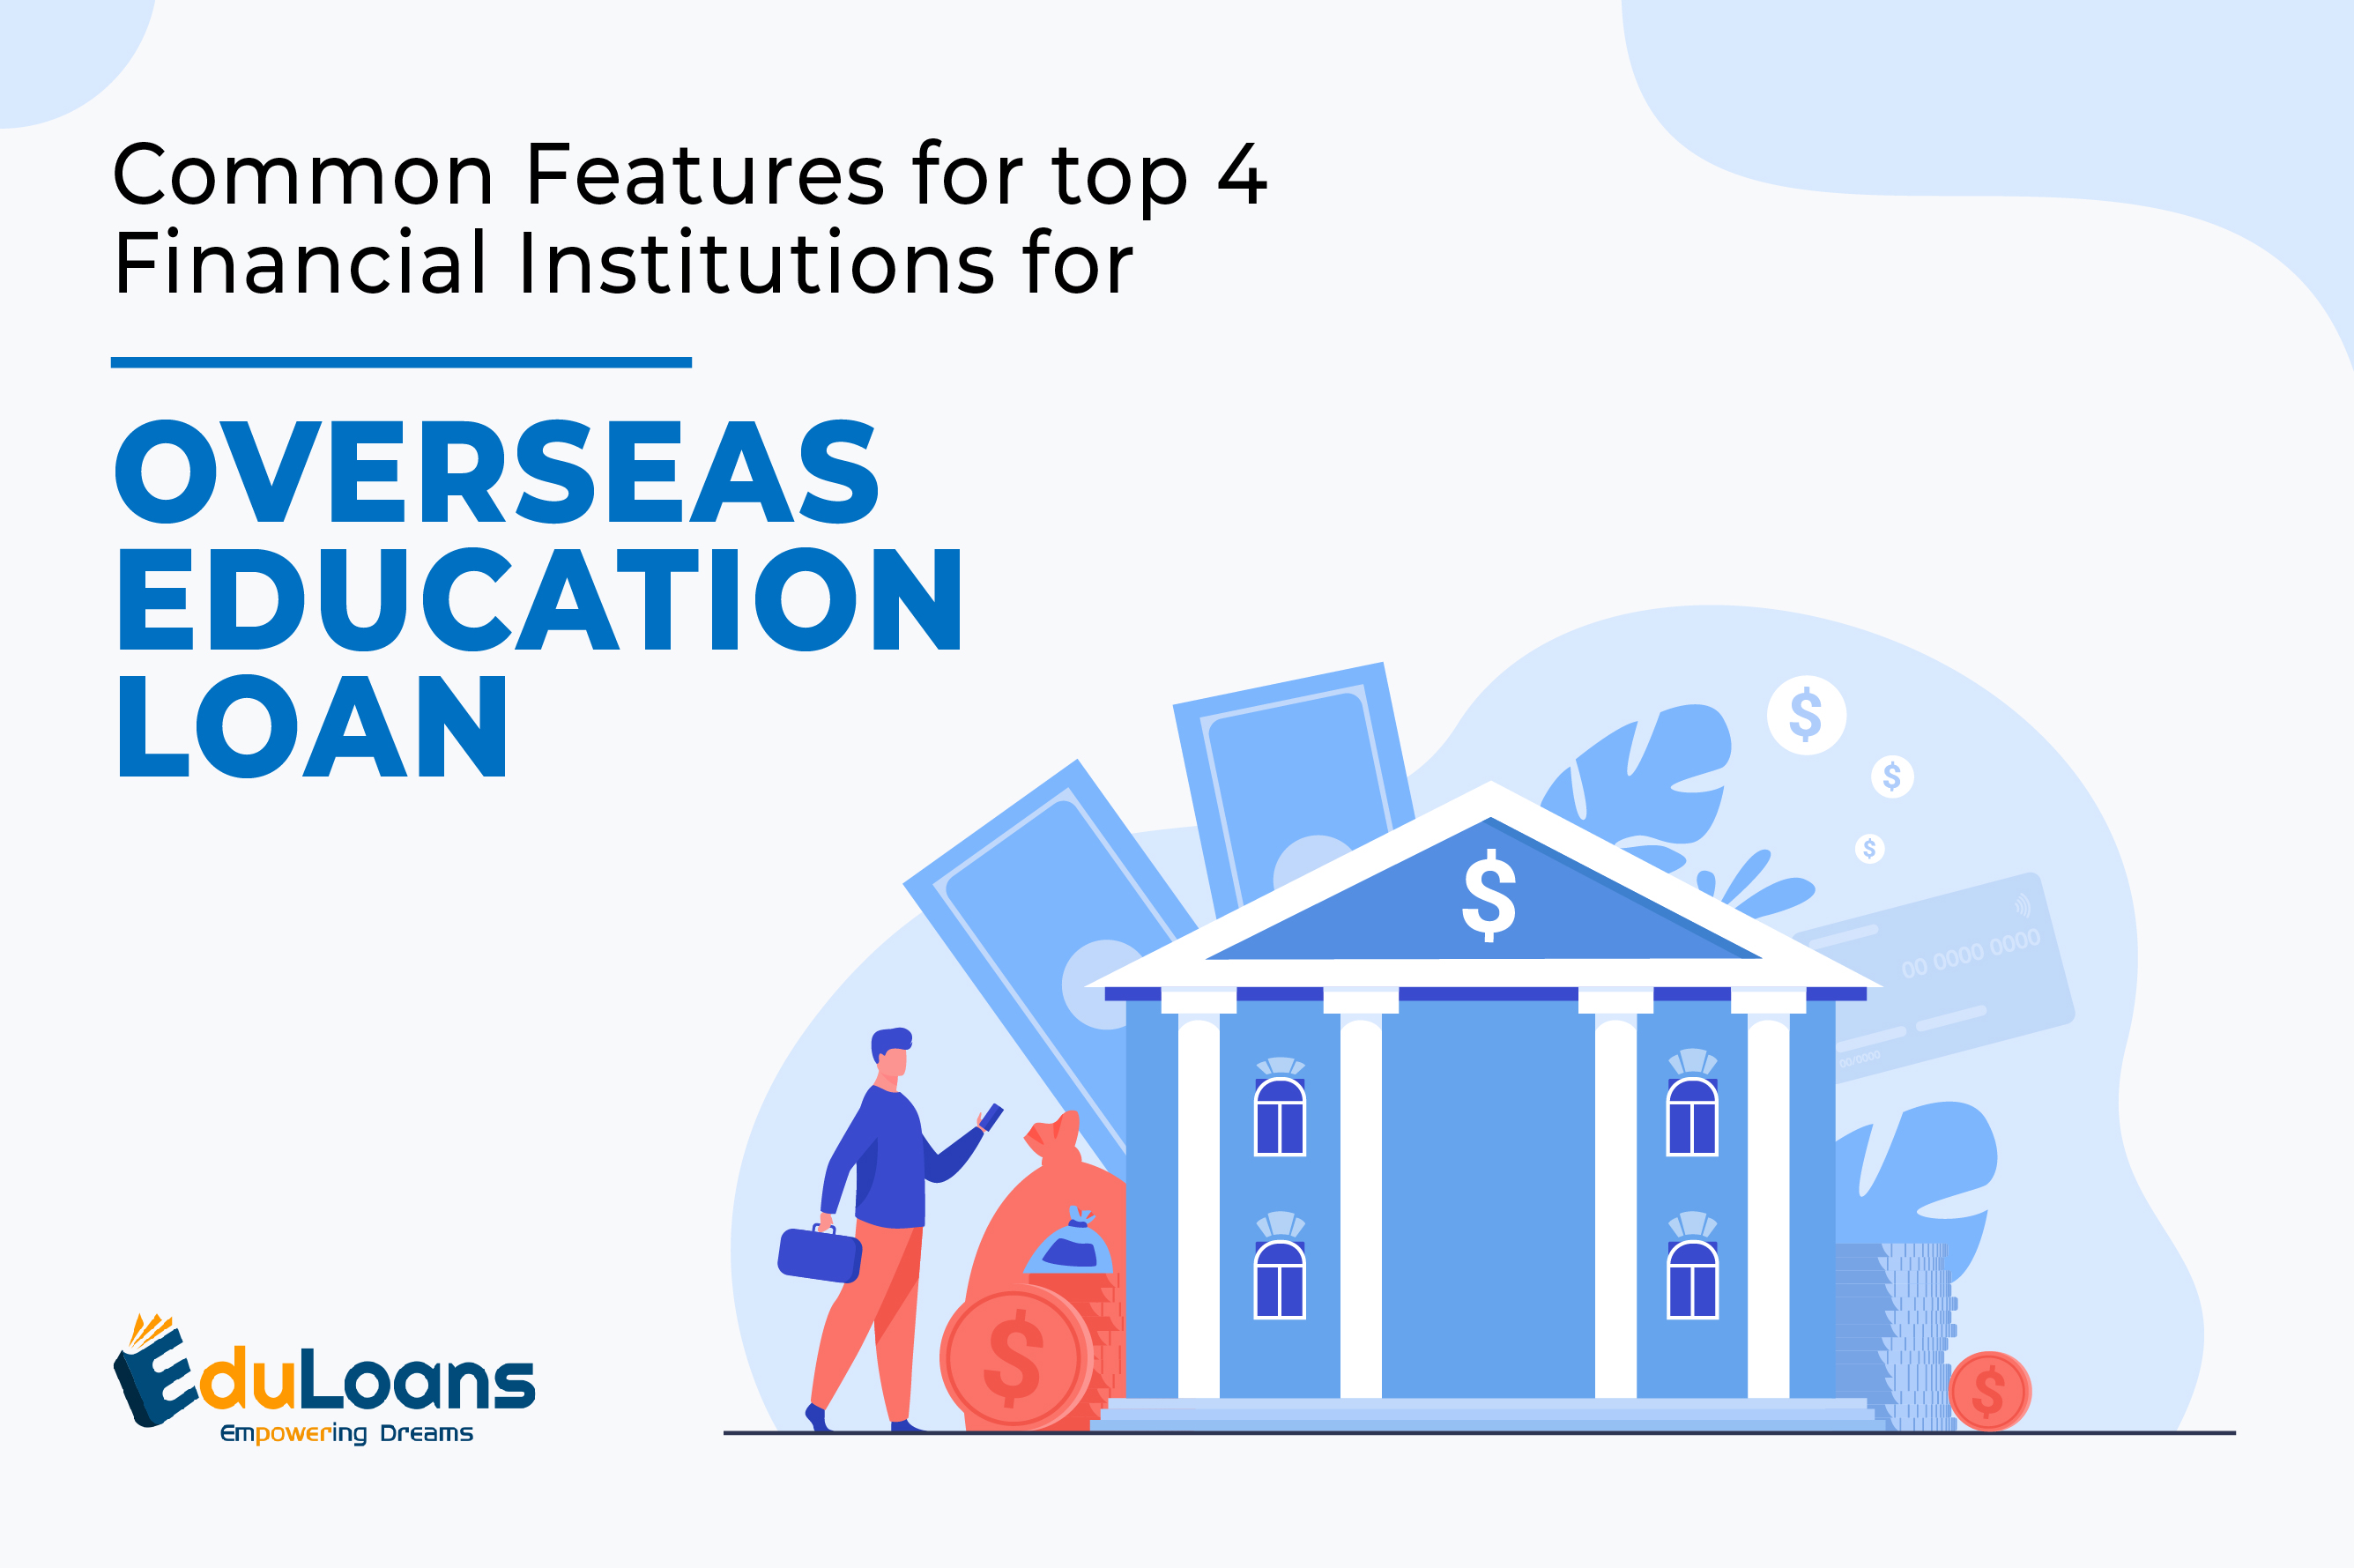 Common Features for top 4 Financial Institutions for Overseas Education Loan